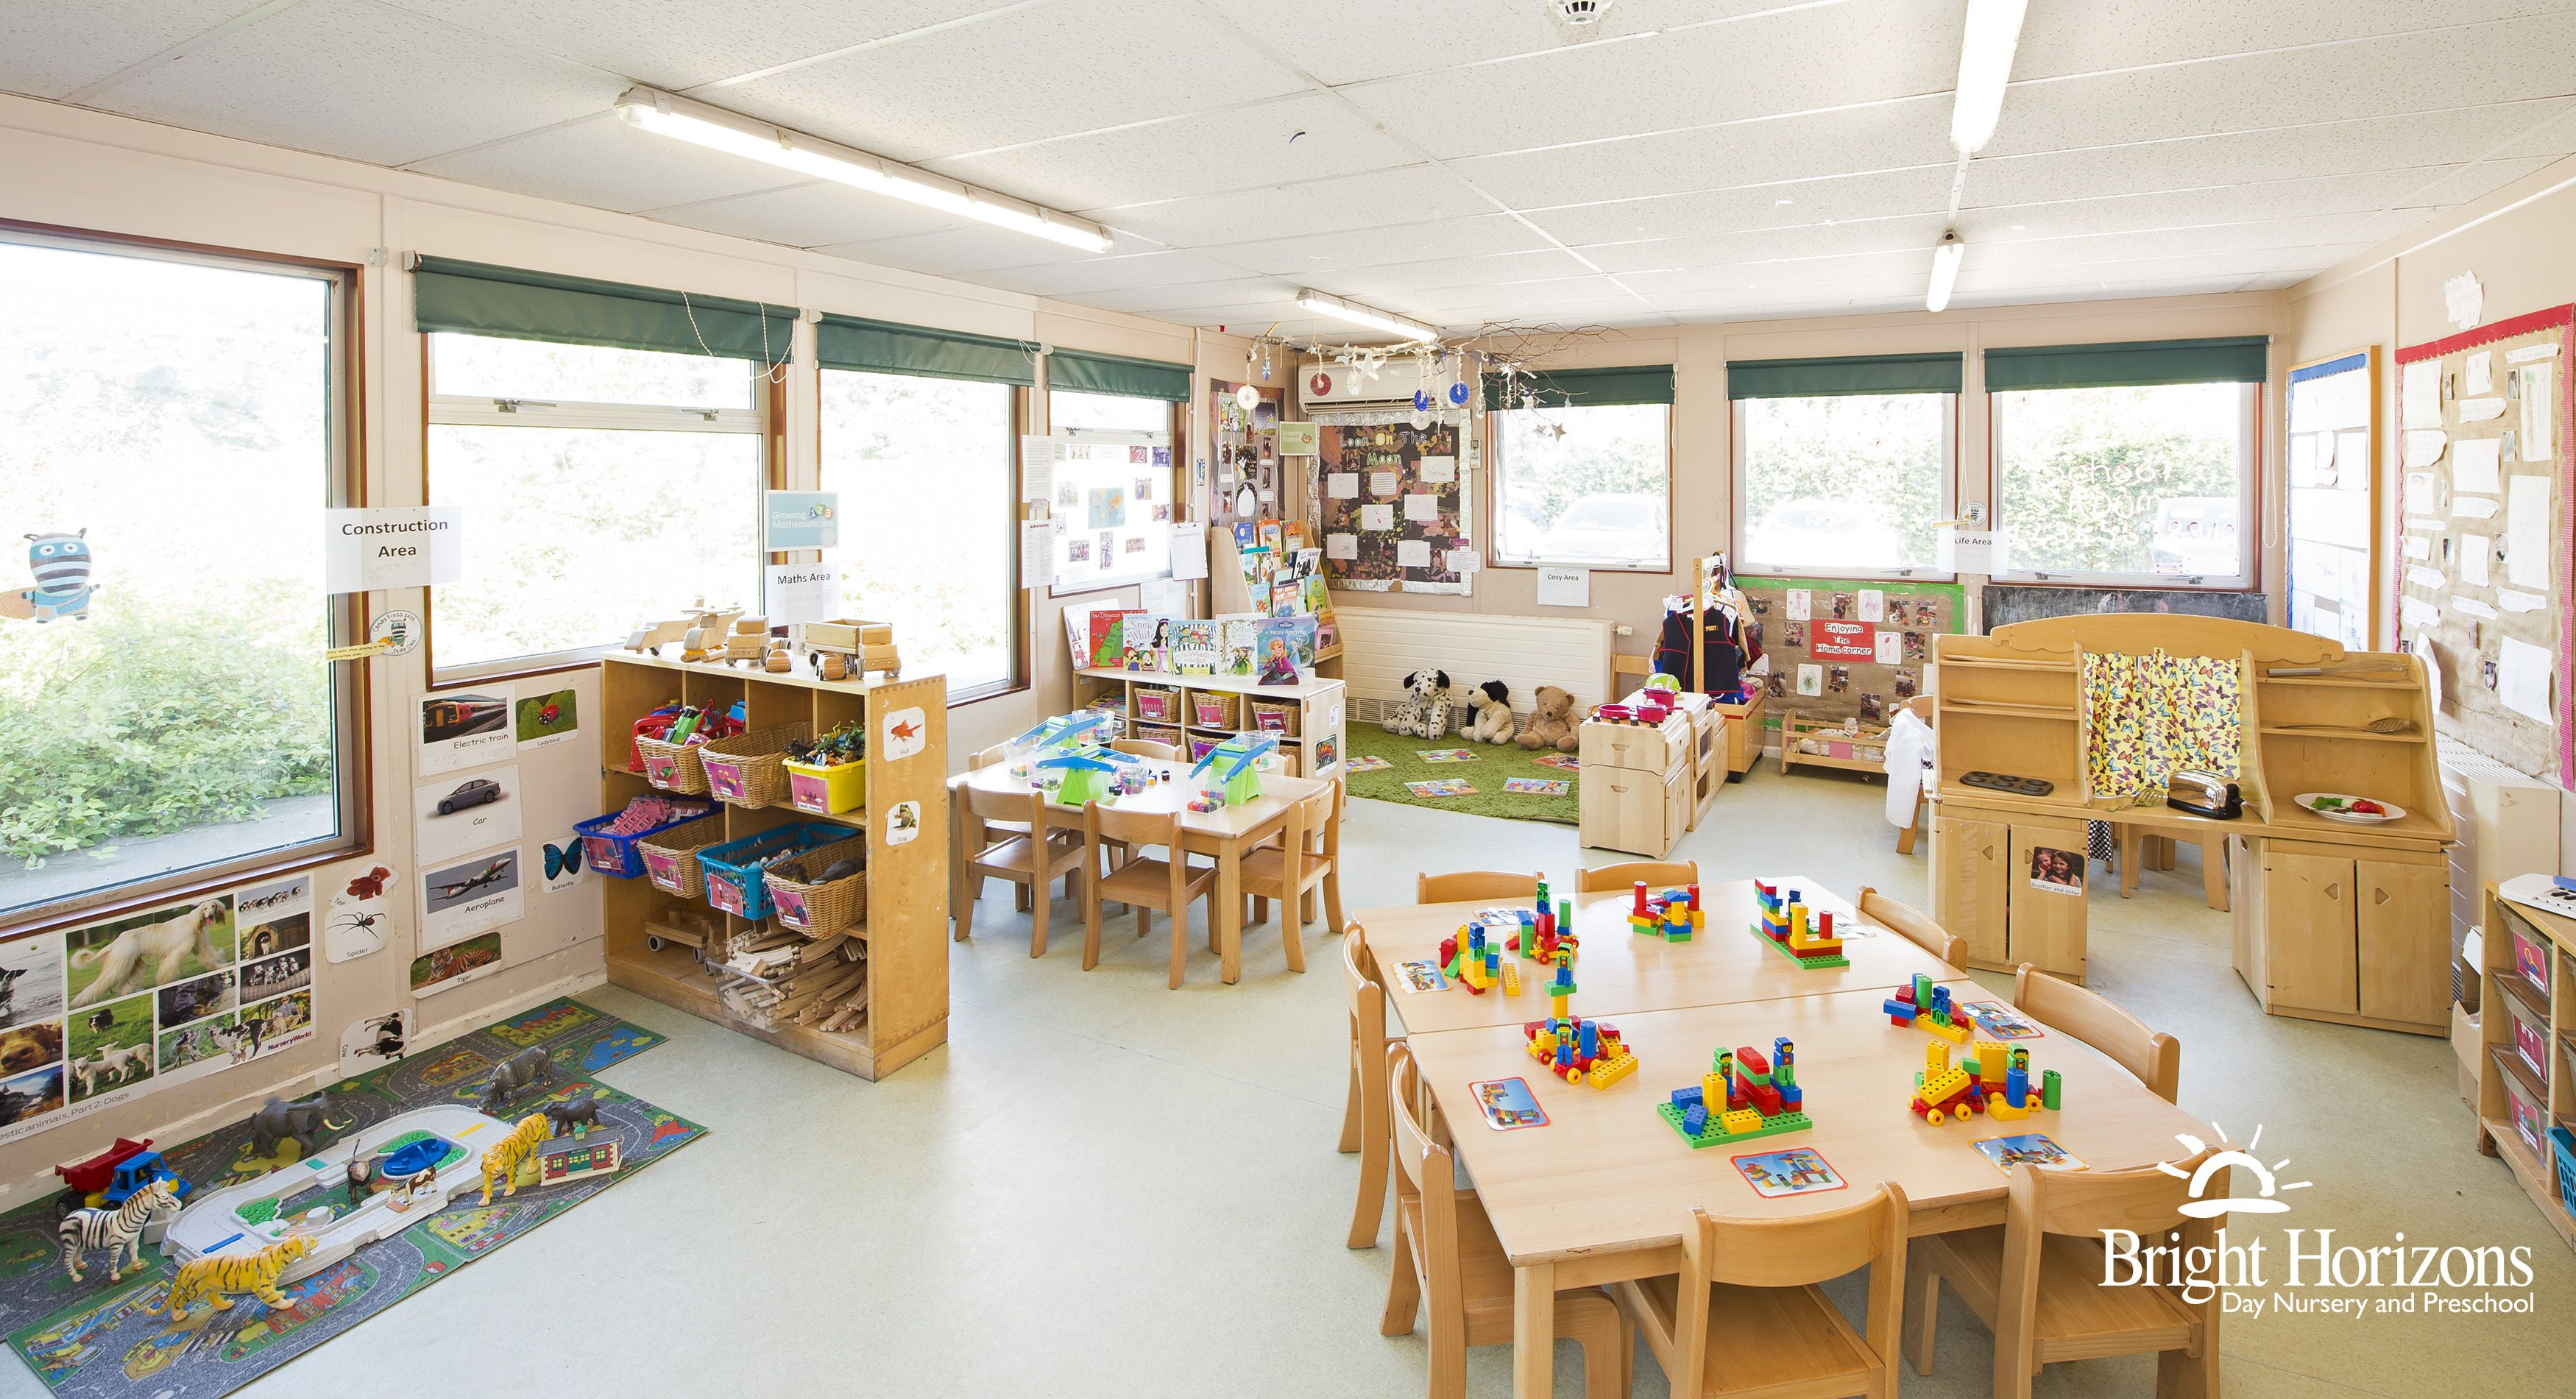 Little Stars Day Nursery And Preschool Is Situated On Site